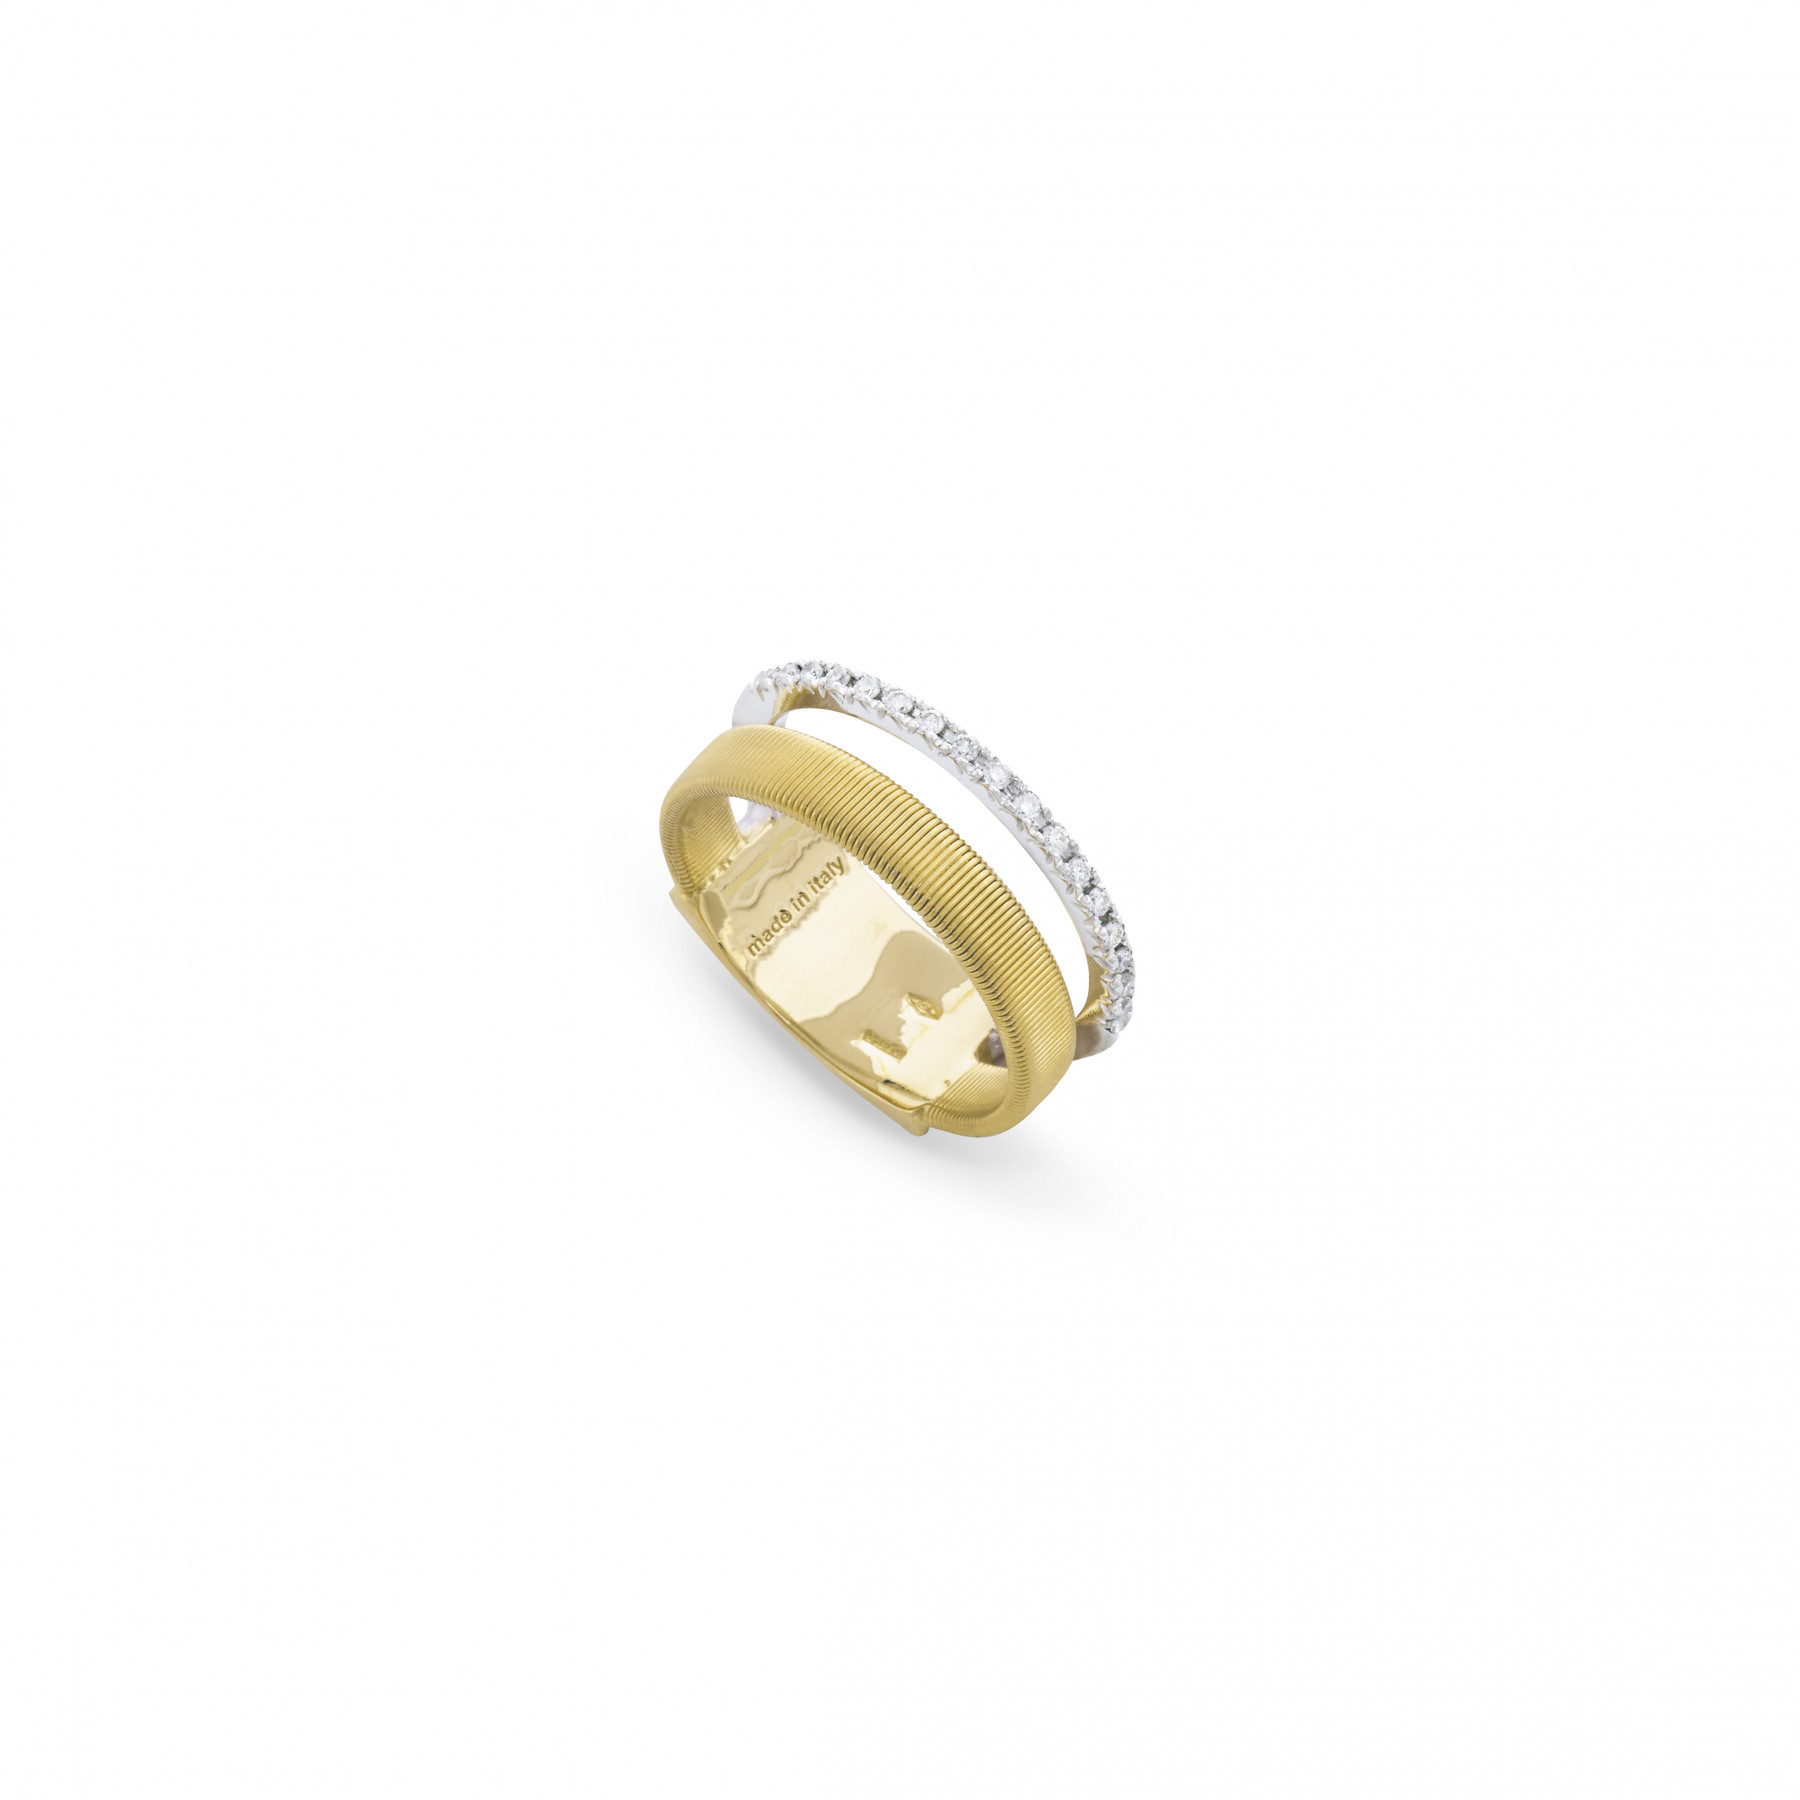 Marco Bicego Masai Double Row Pave Diamond Ring